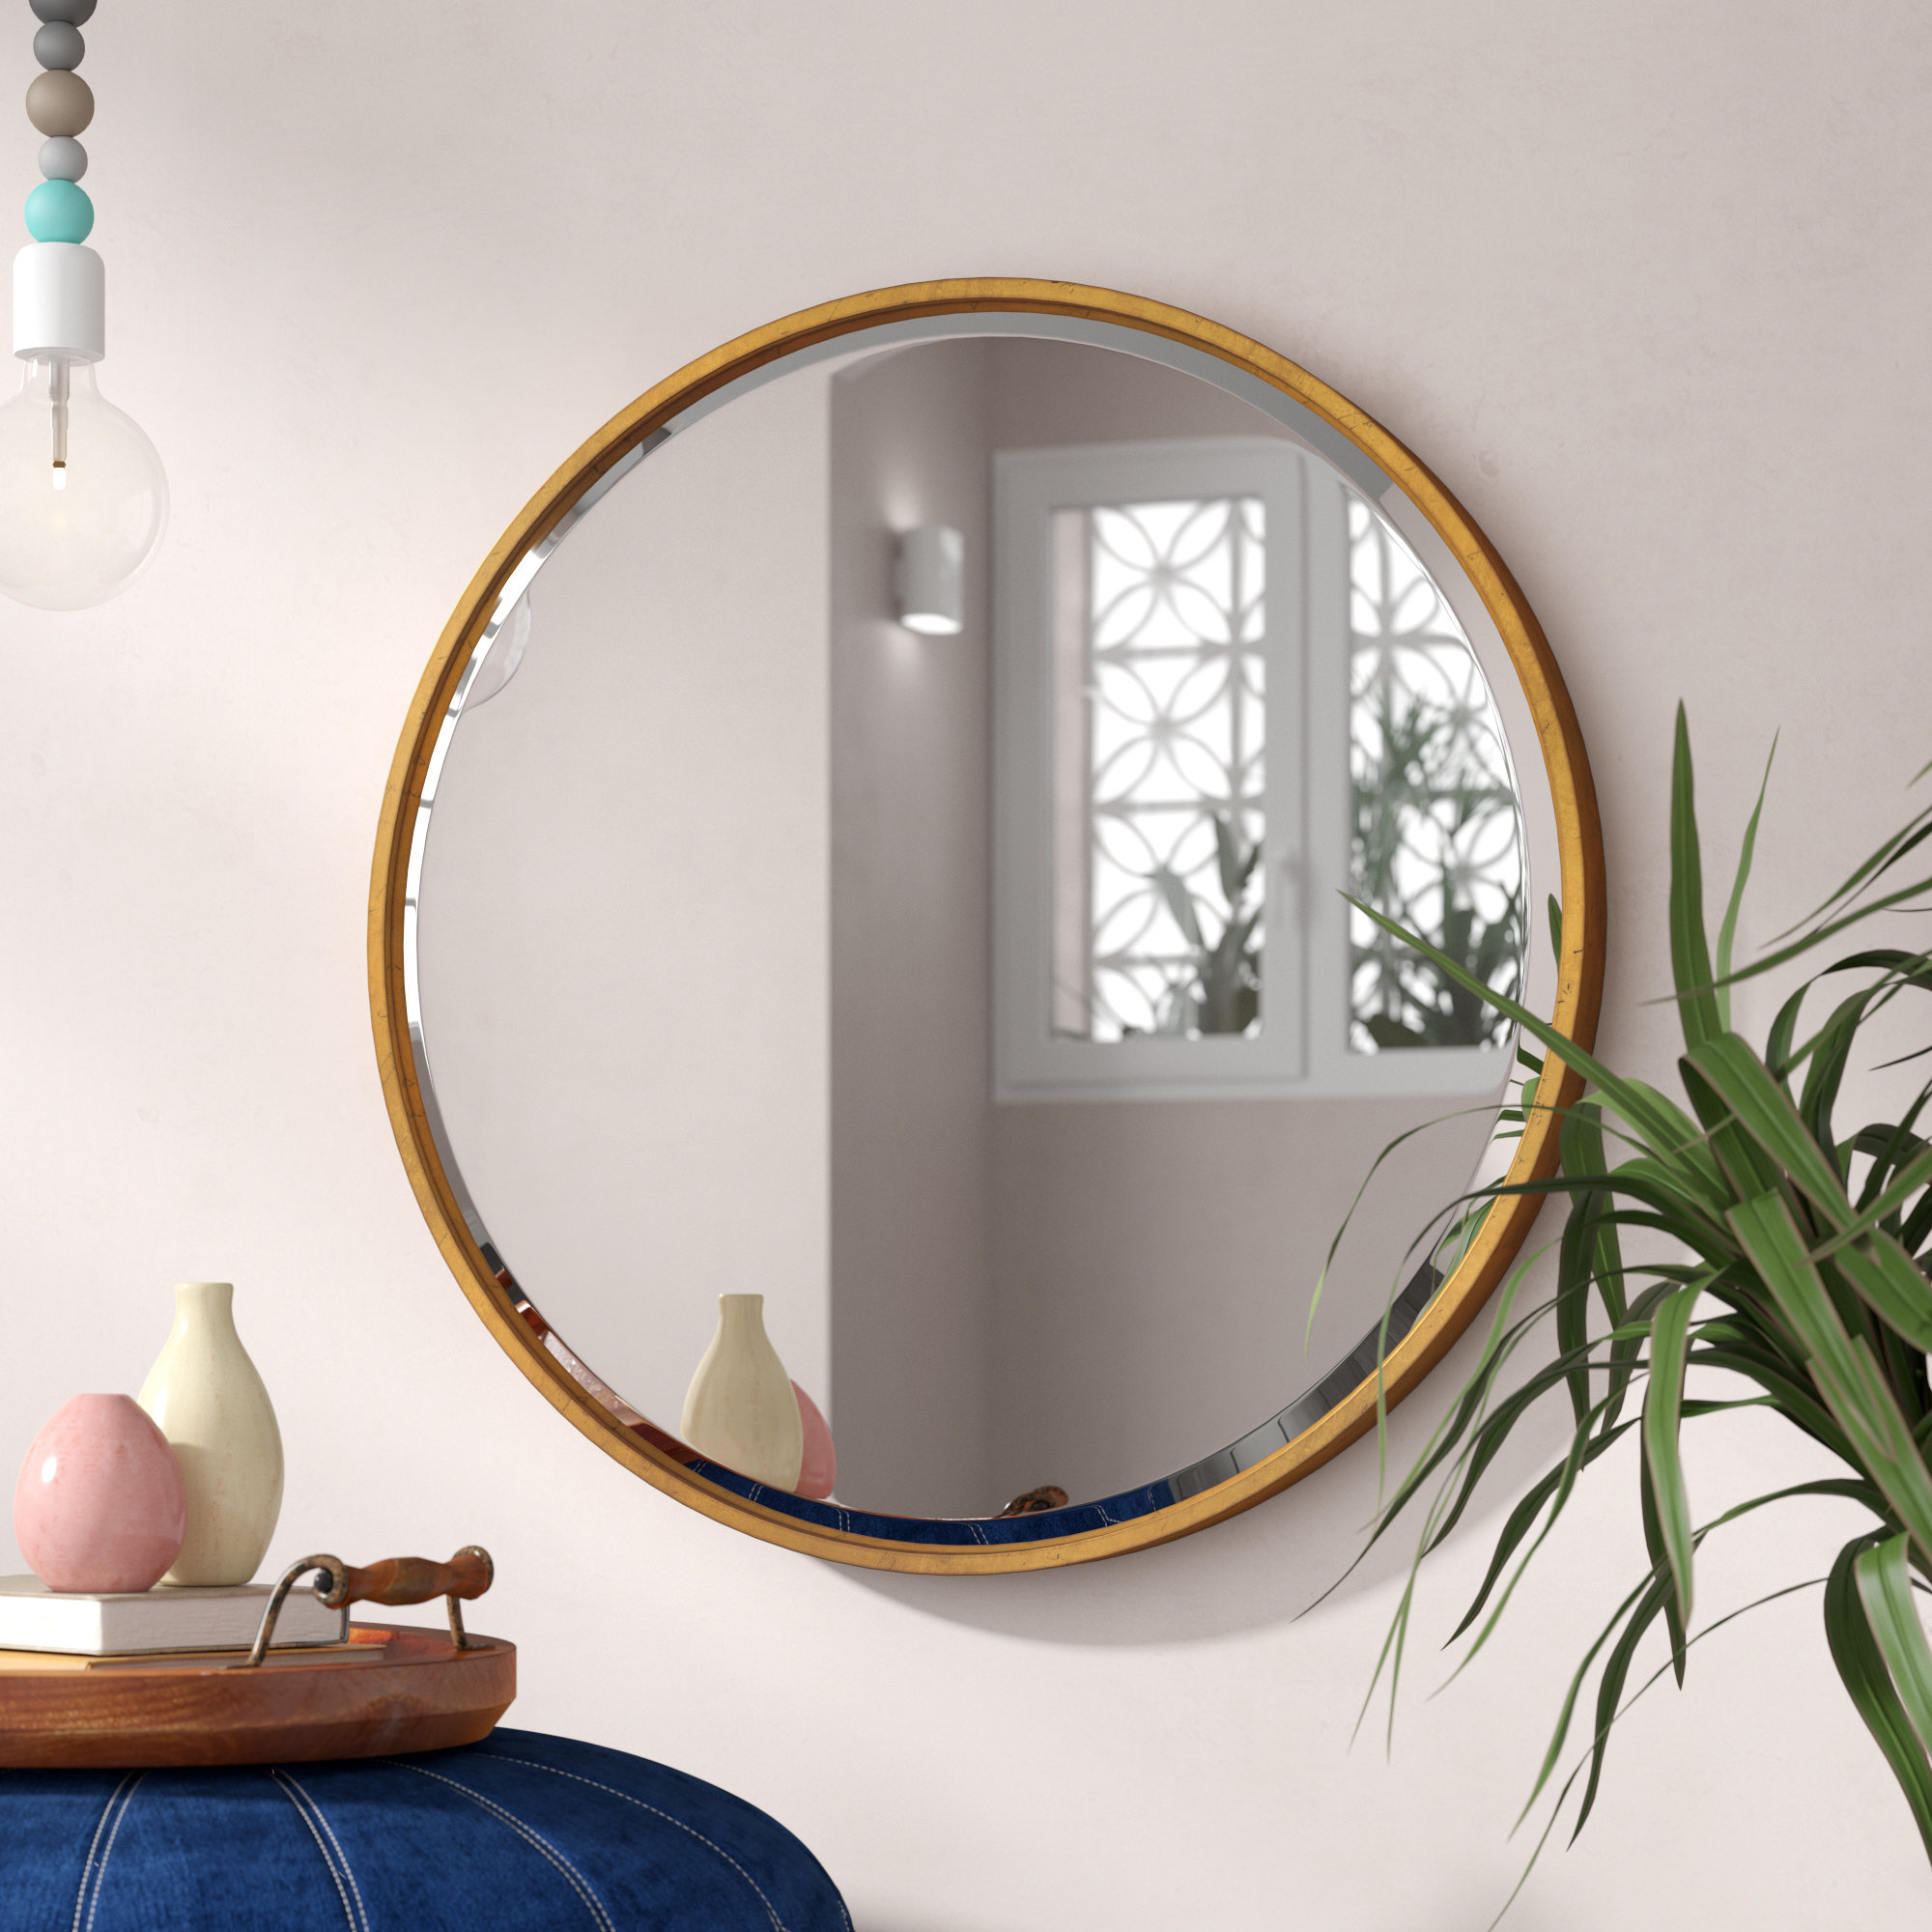 Jamie Modern & Contemporary Beveled Wall Mirror intended for Colton Modern & Contemporary Wall Mirrors (Image 18 of 30)